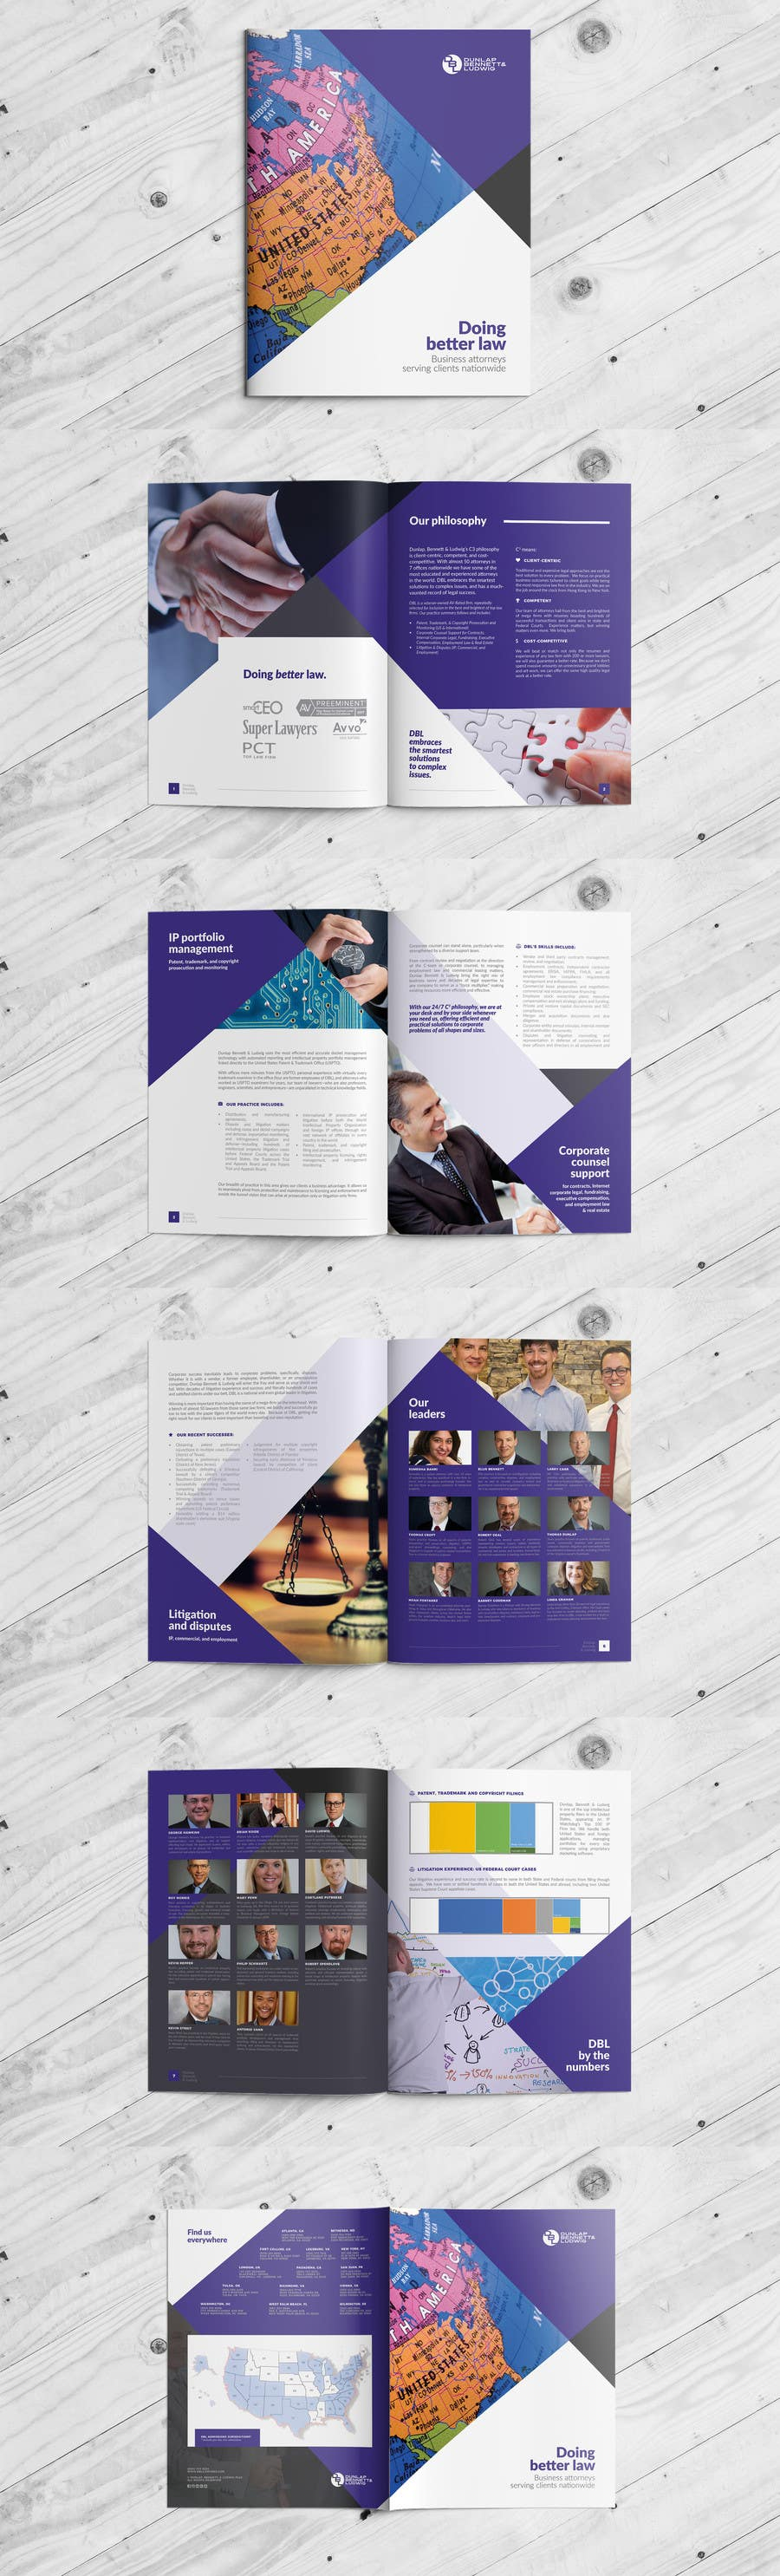 Contest Entry #49 For Law Firm Brochure/ Pitch Book Design Project